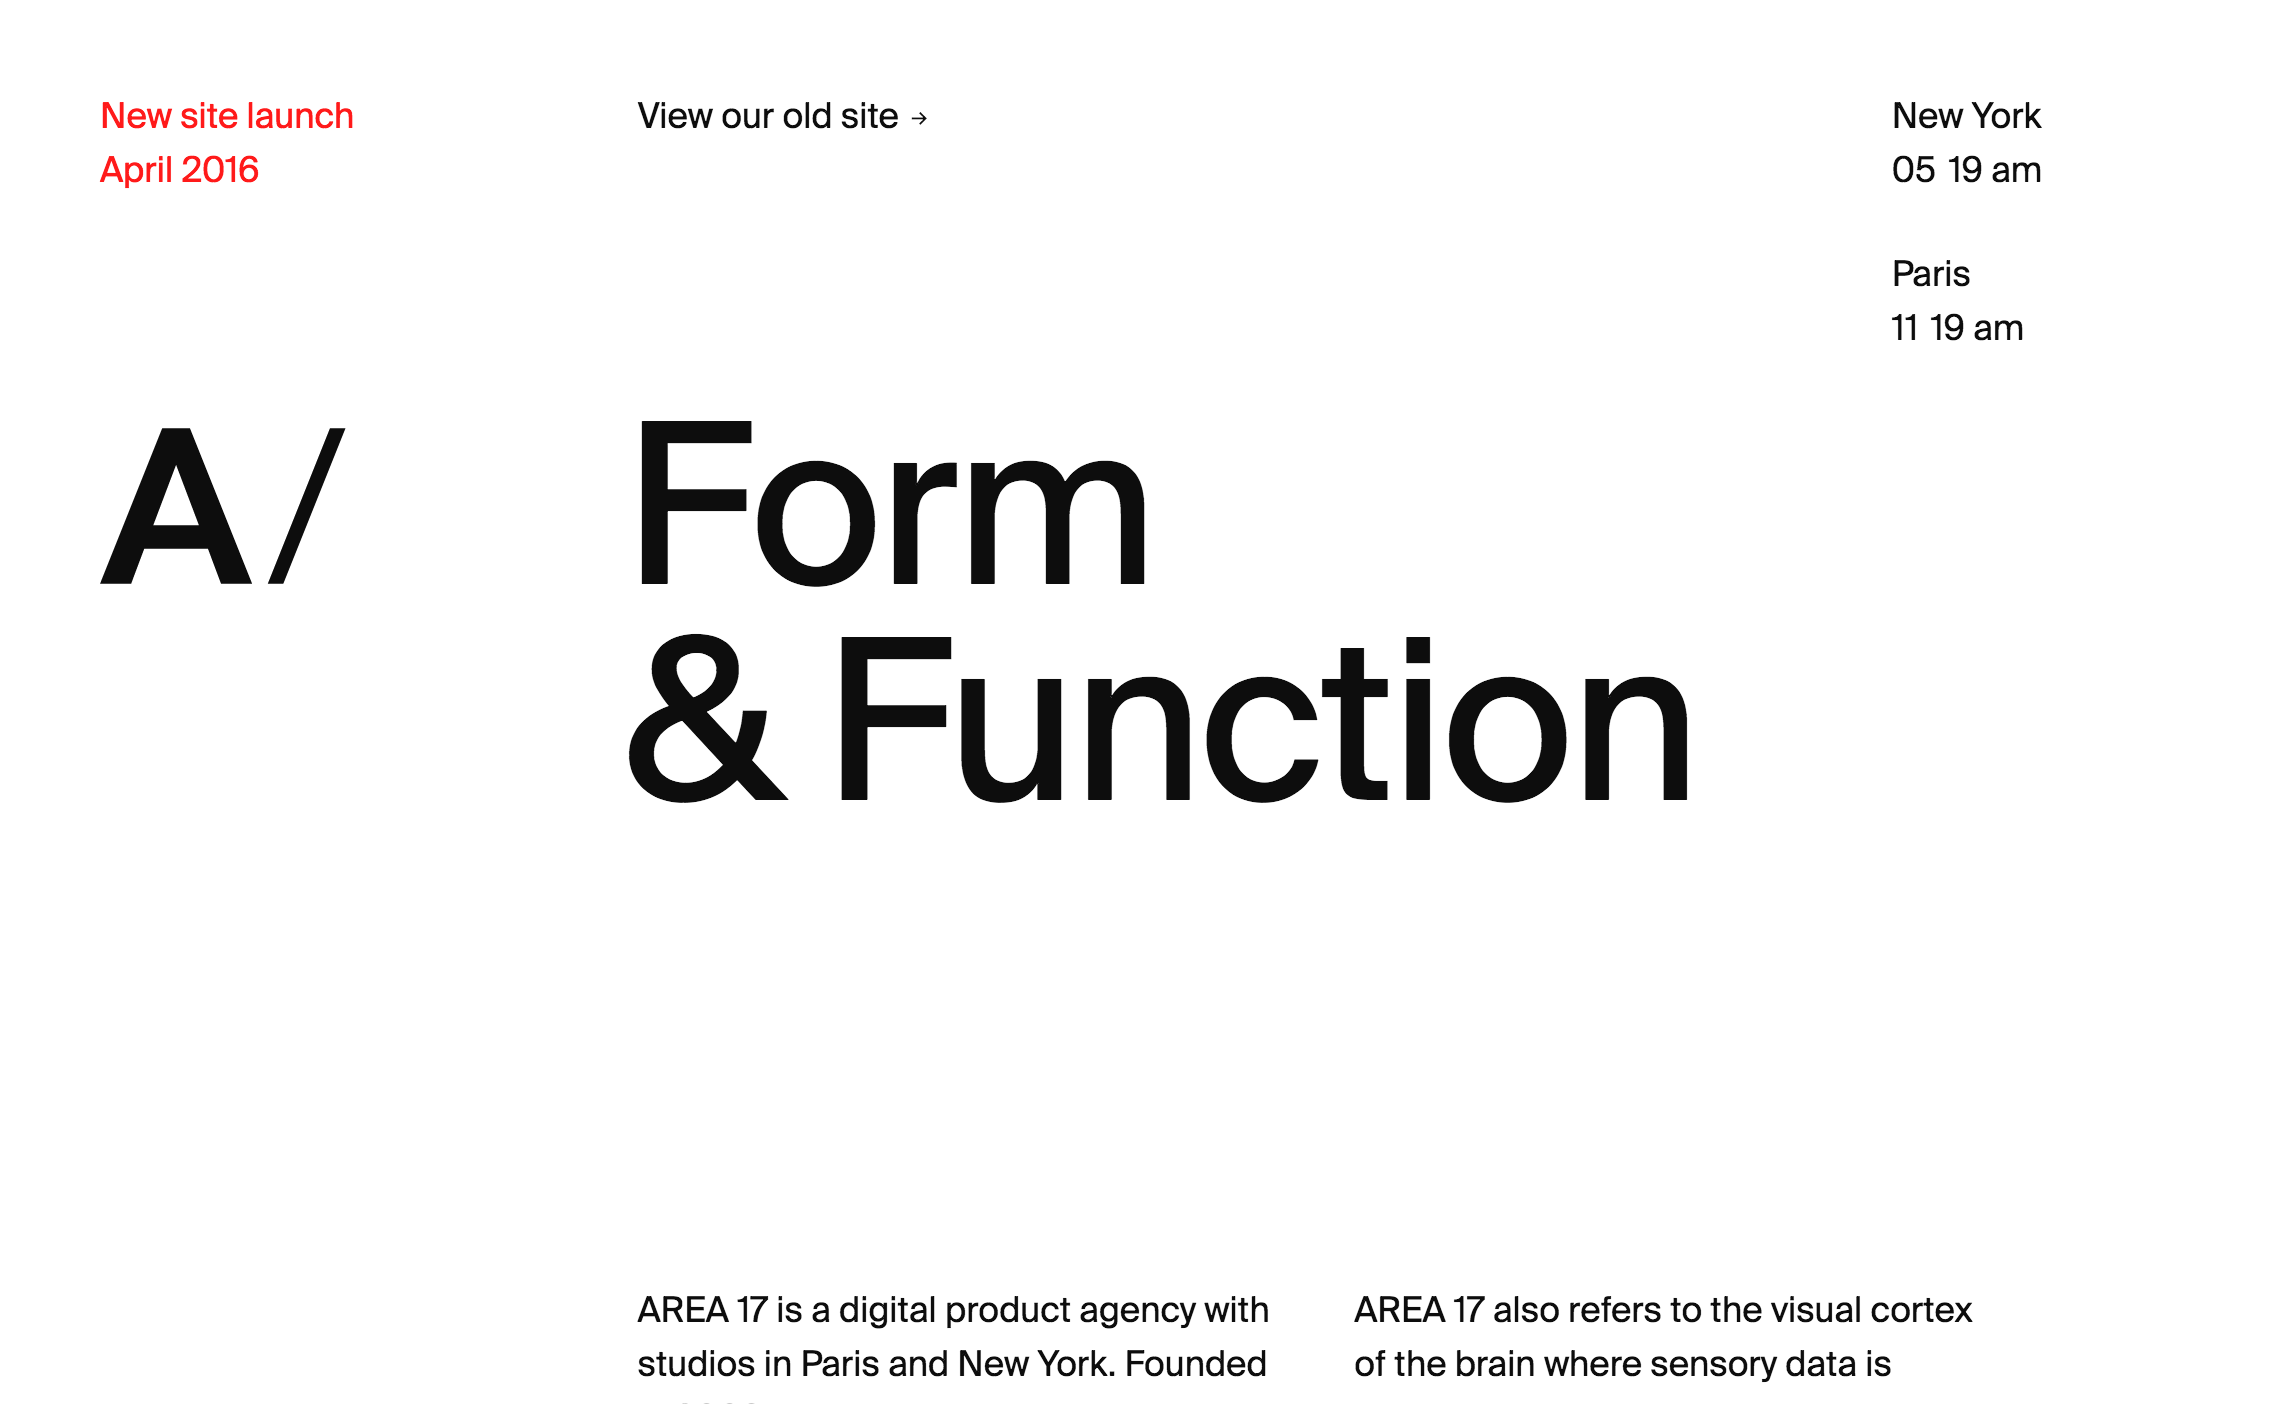 AREA 17 — A digital product agency